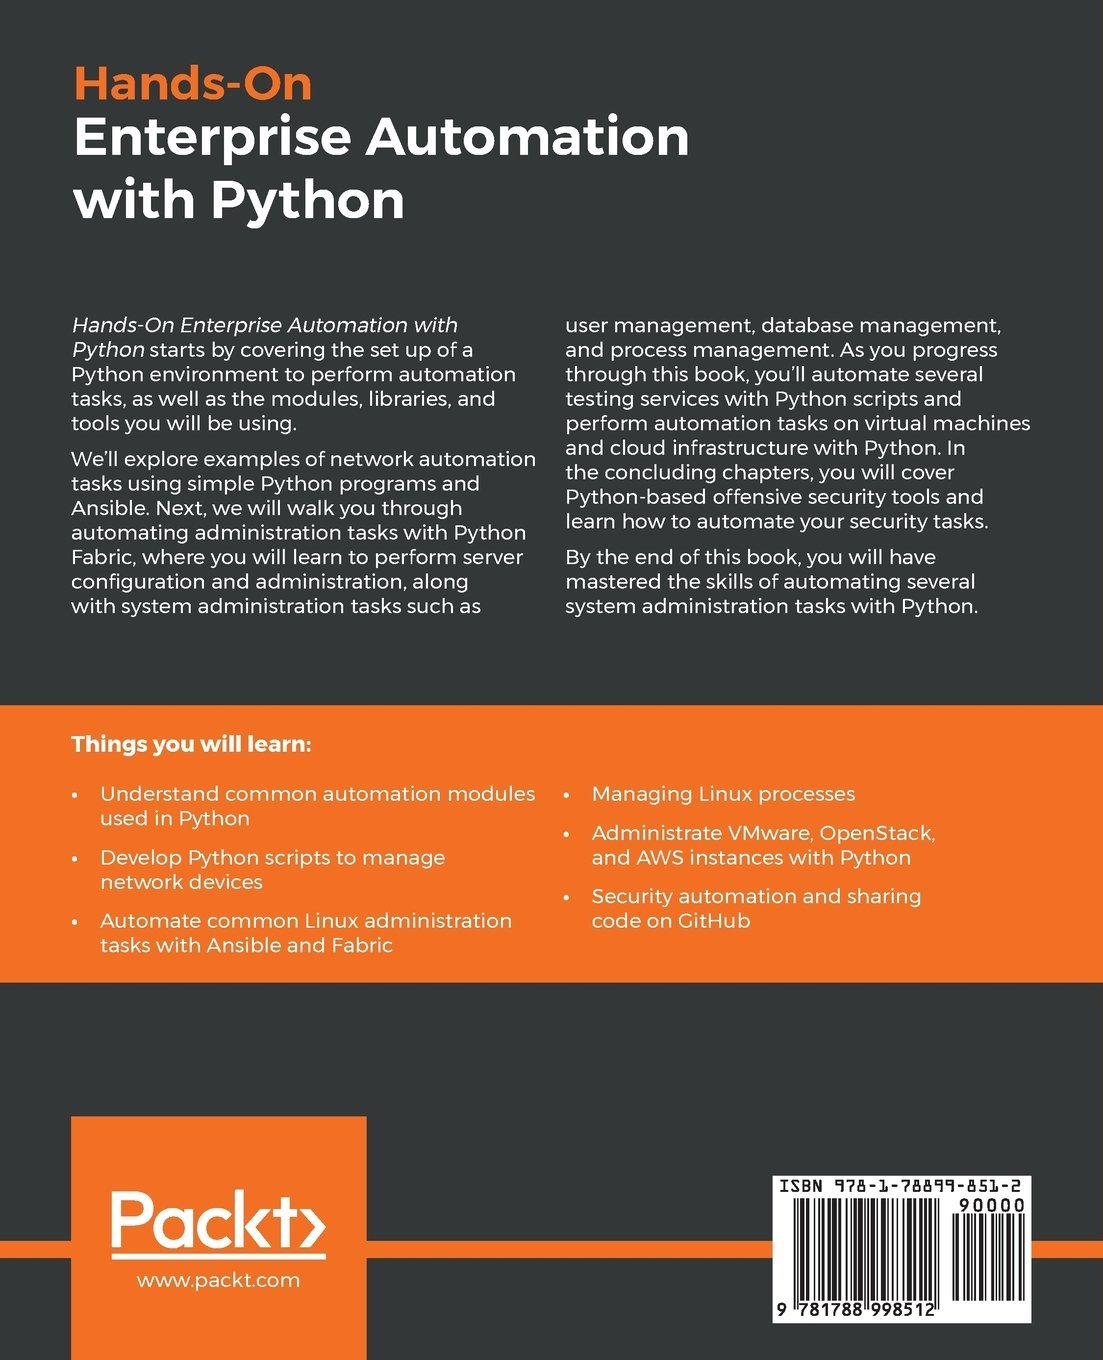 Buy Hands-On Enterprise Automation with Python: Automate common